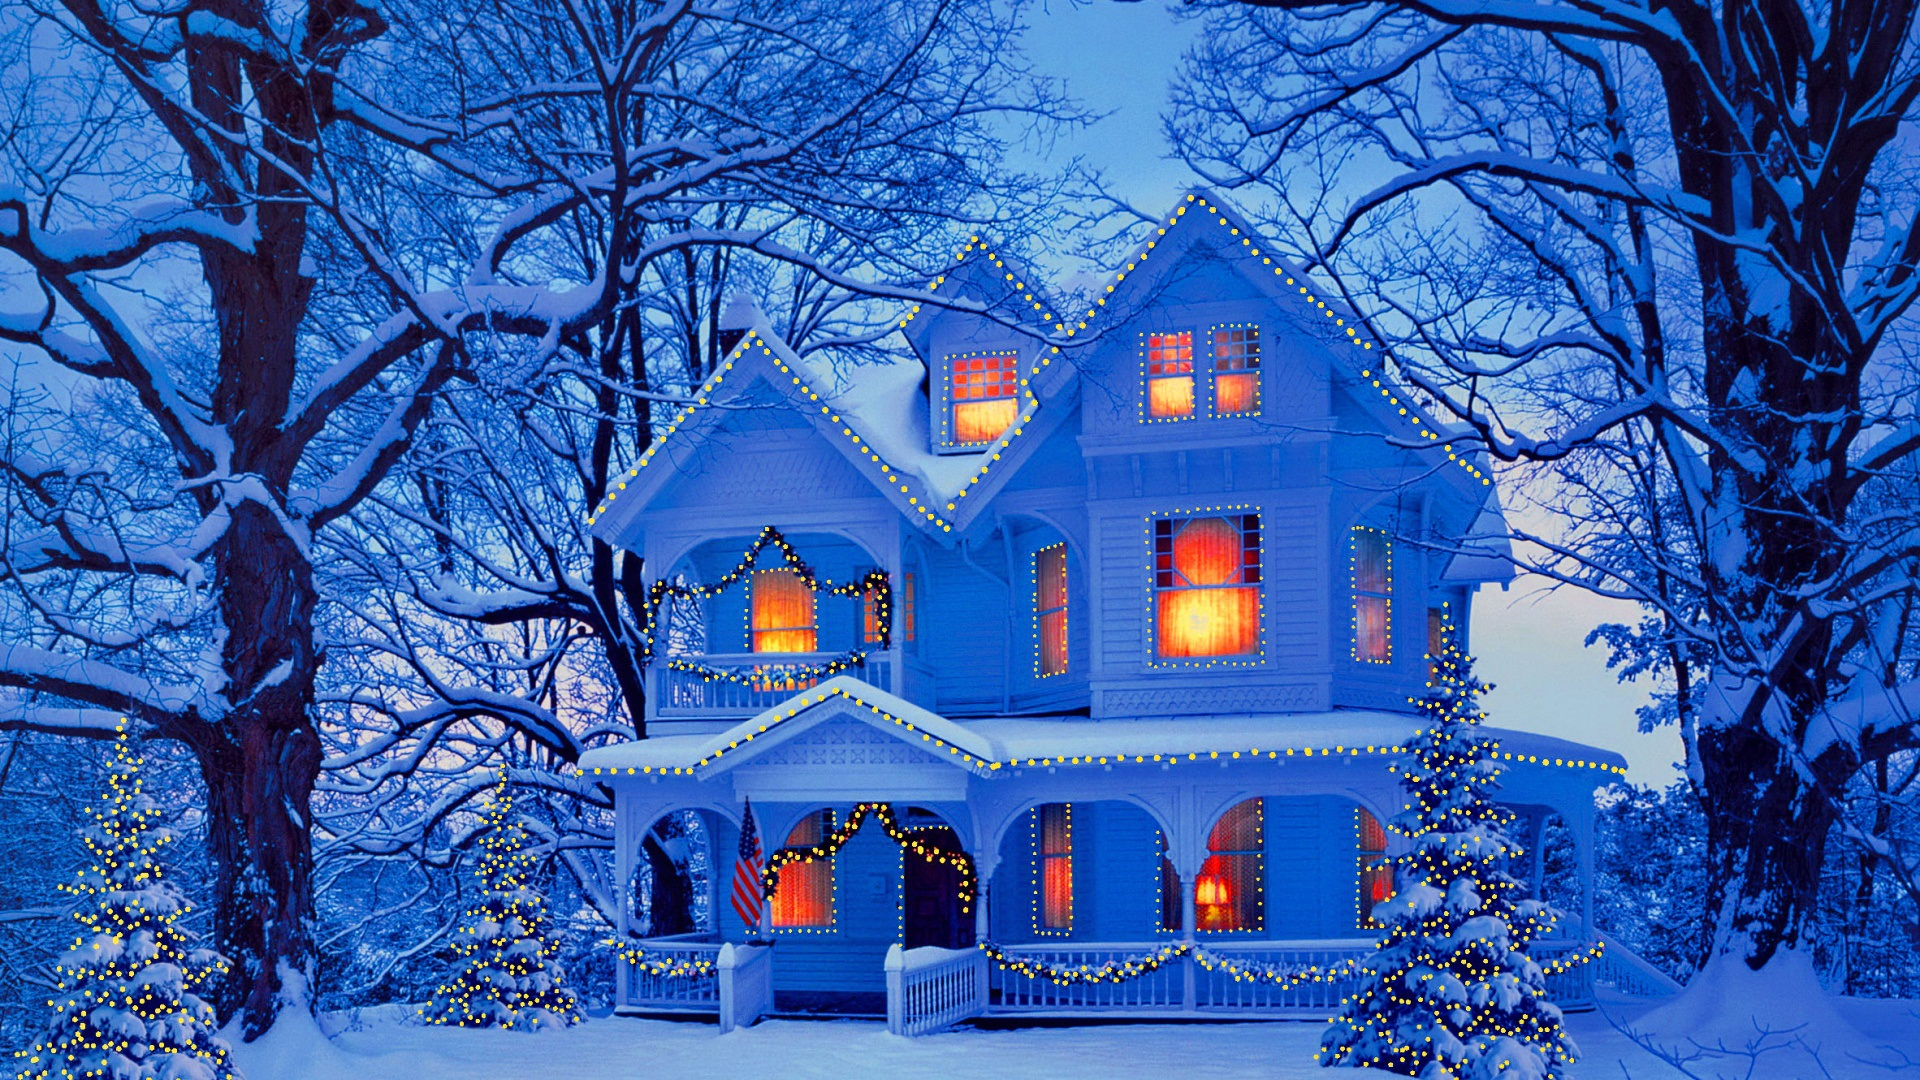 Winter Home Wallpapers Wallpaper Cave